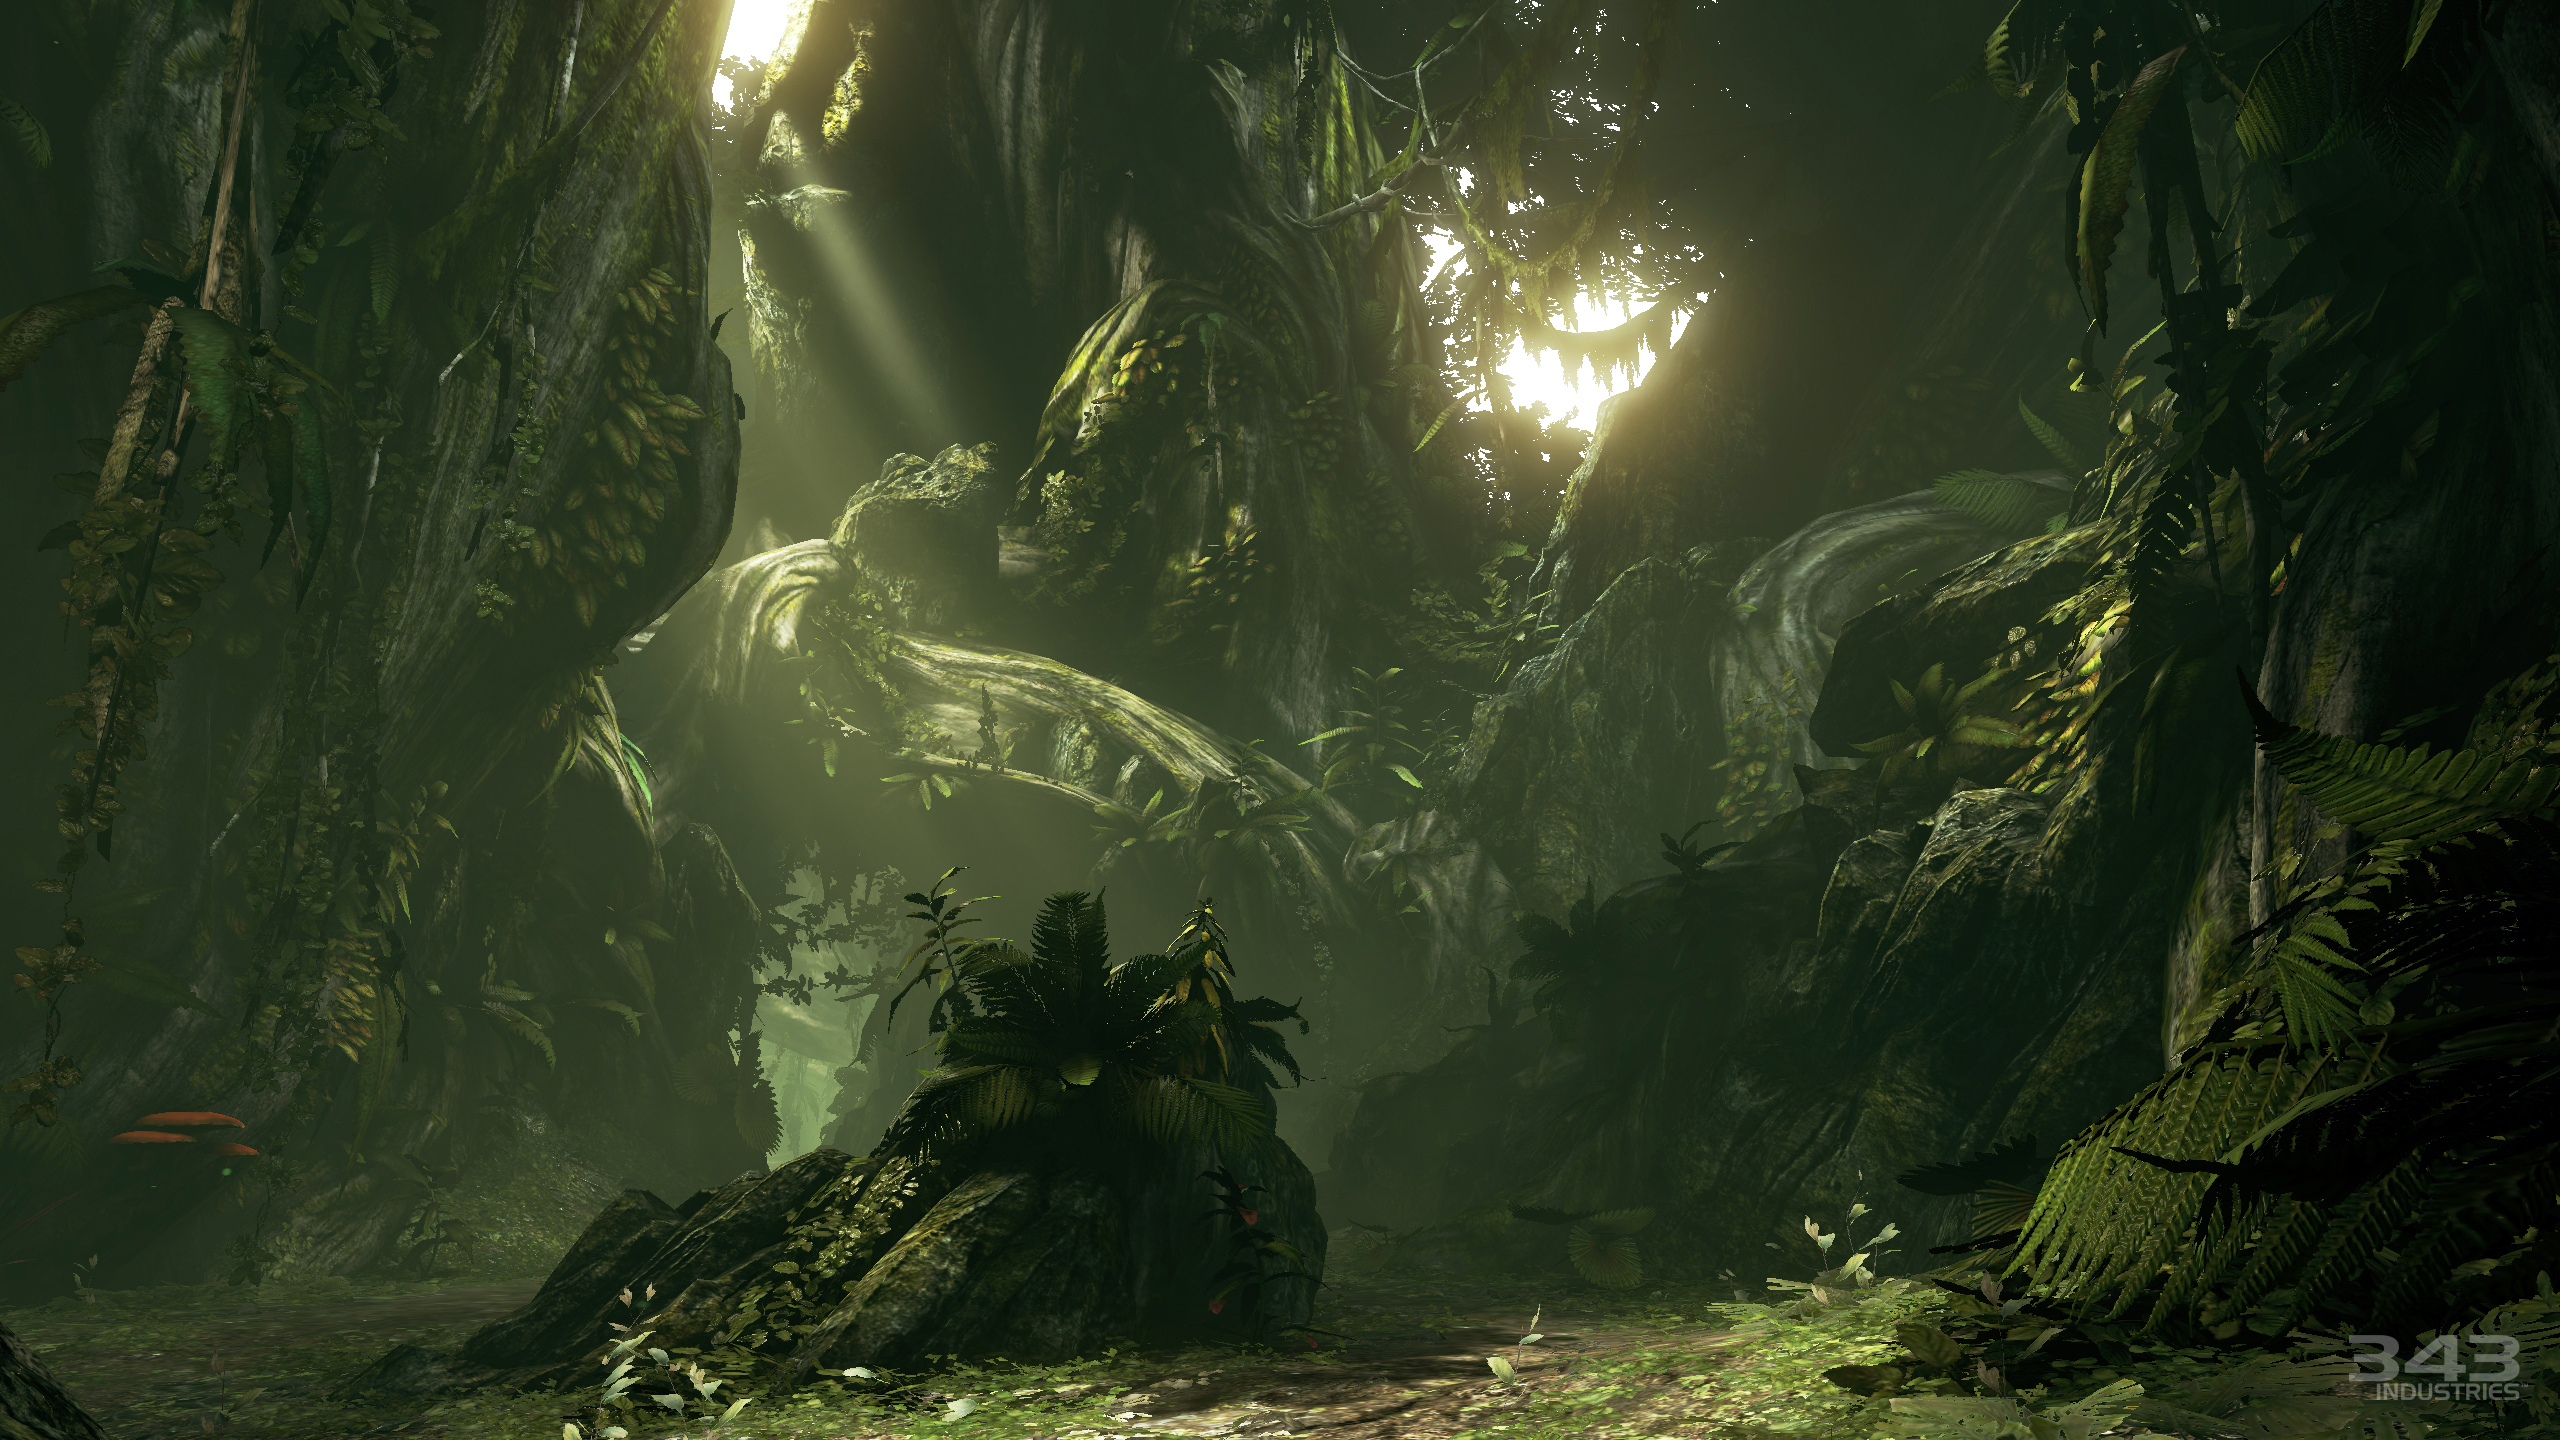 Halo 4 Campaign, clean capture screenshot